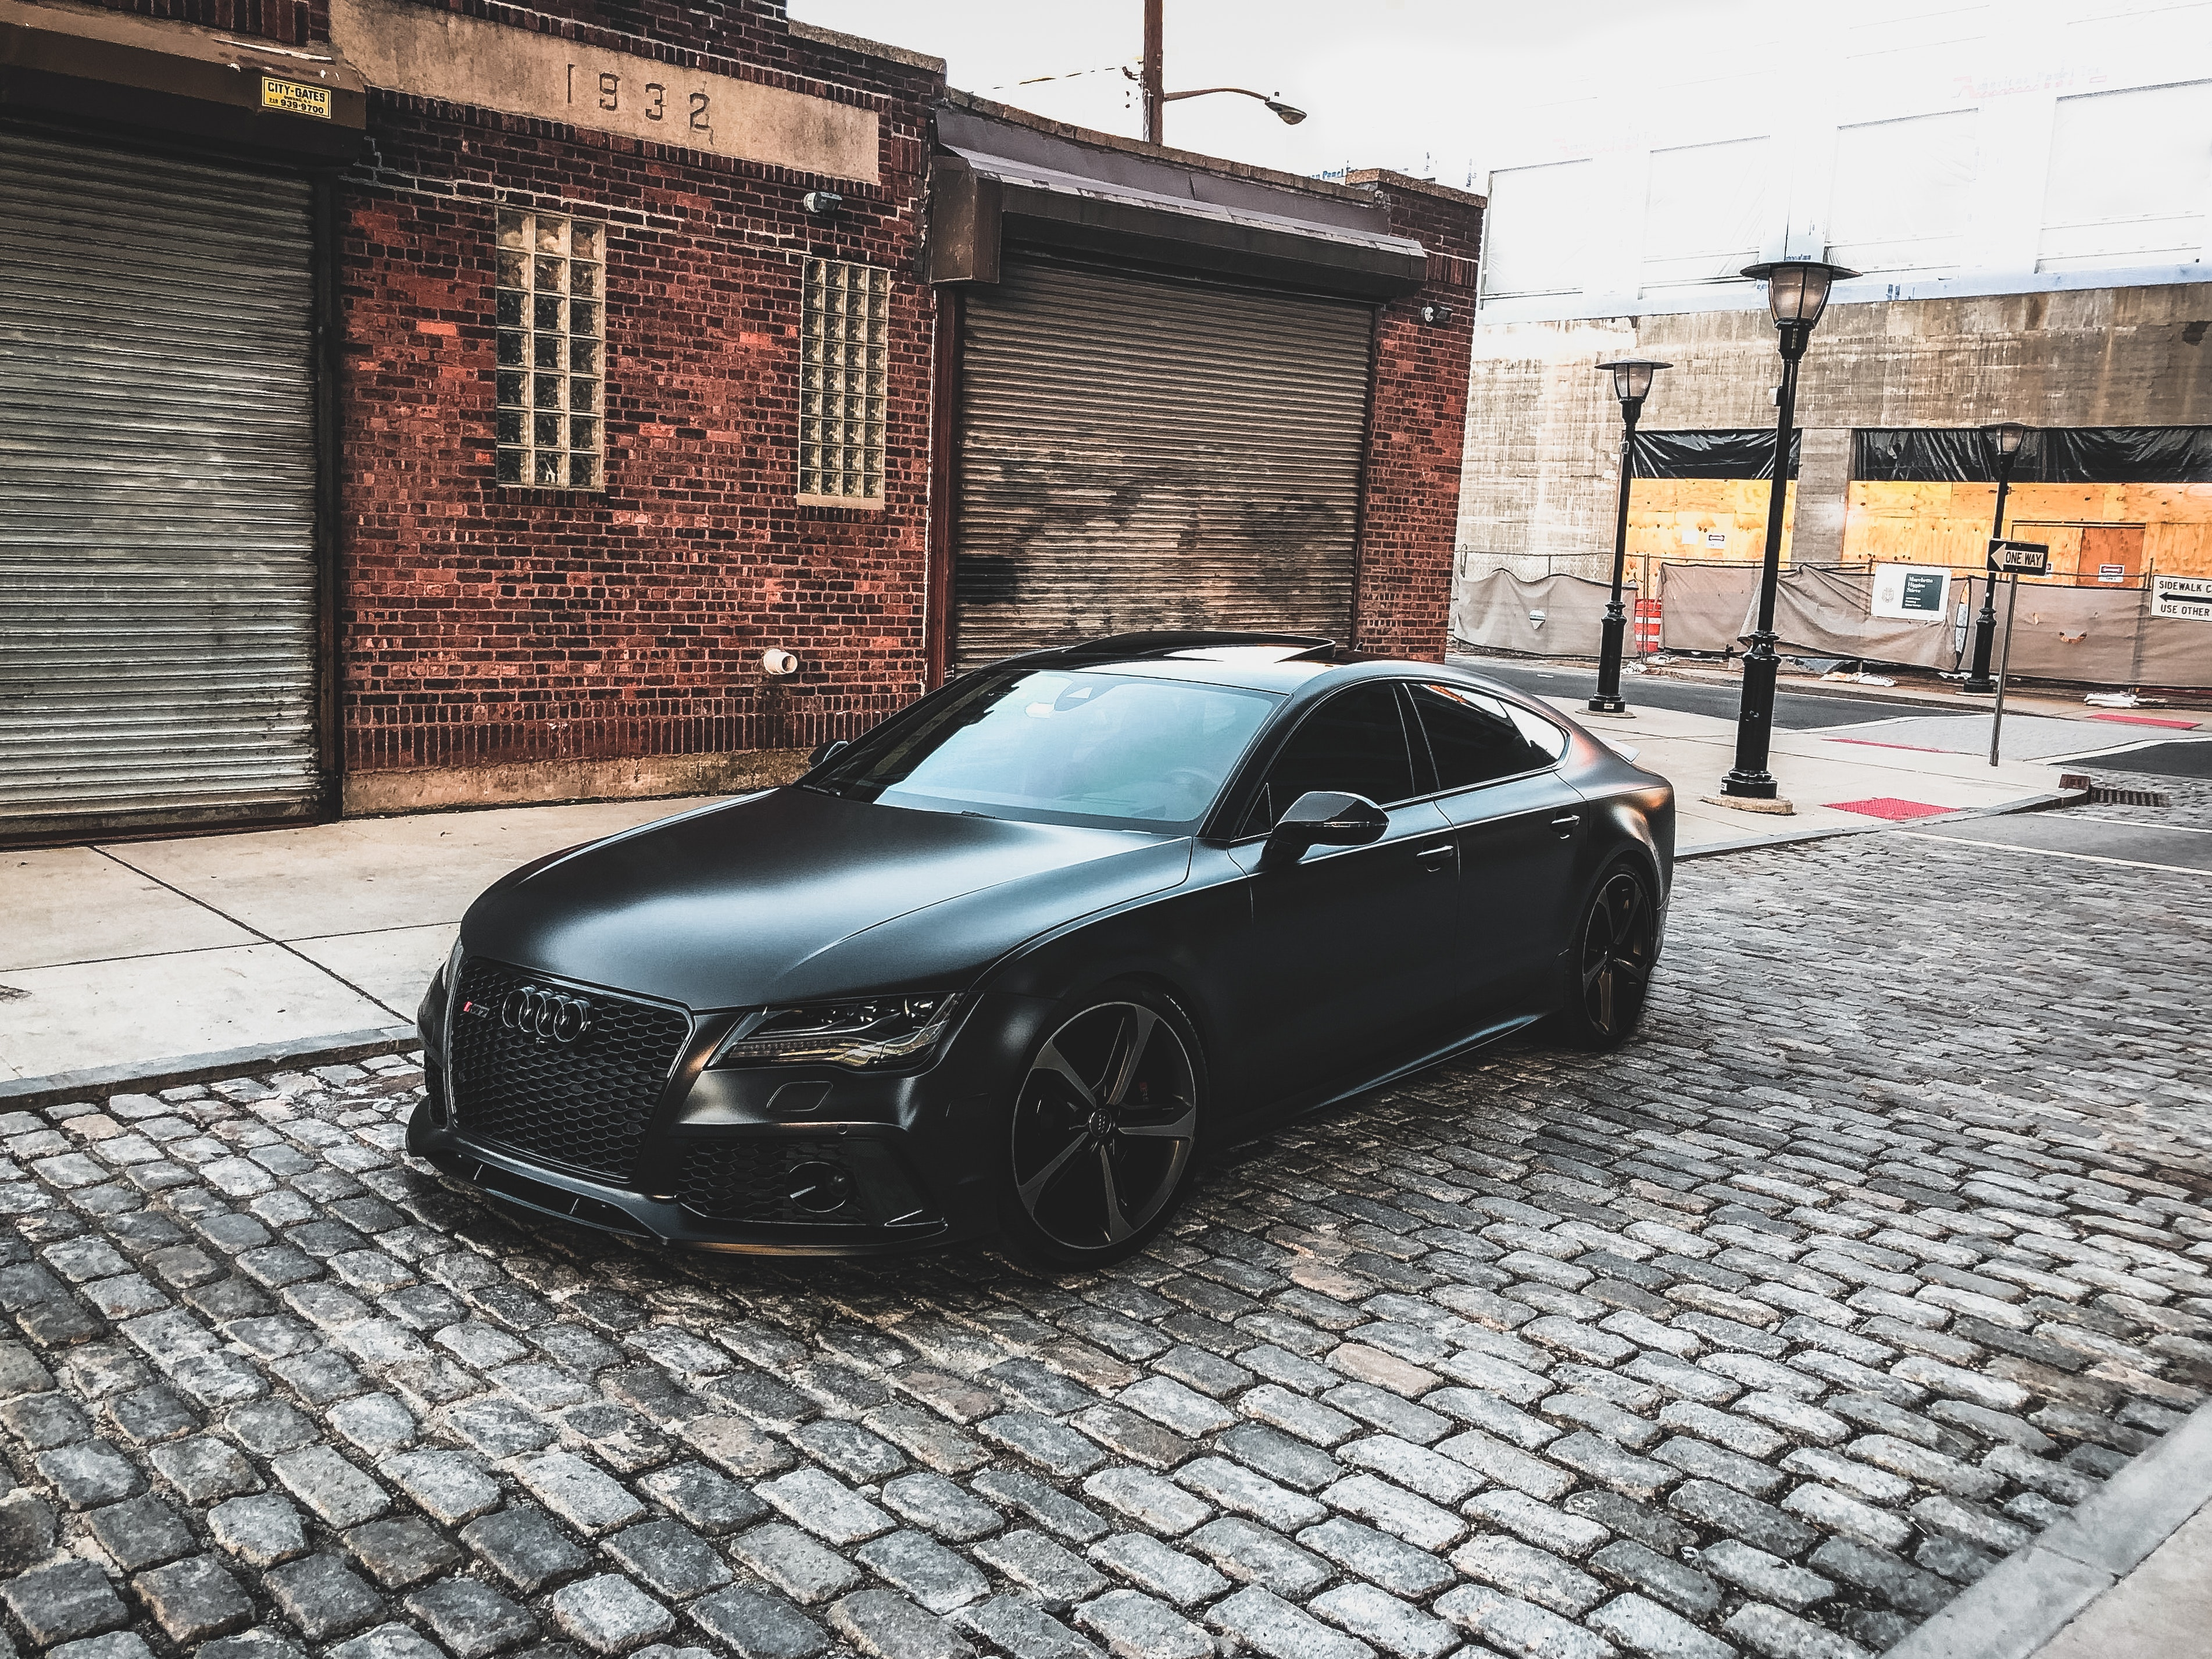 Black Audi A-series Parked Near Brown Brick House, Architecture, Outdoors, Vehicle, Urban, HQ Photo